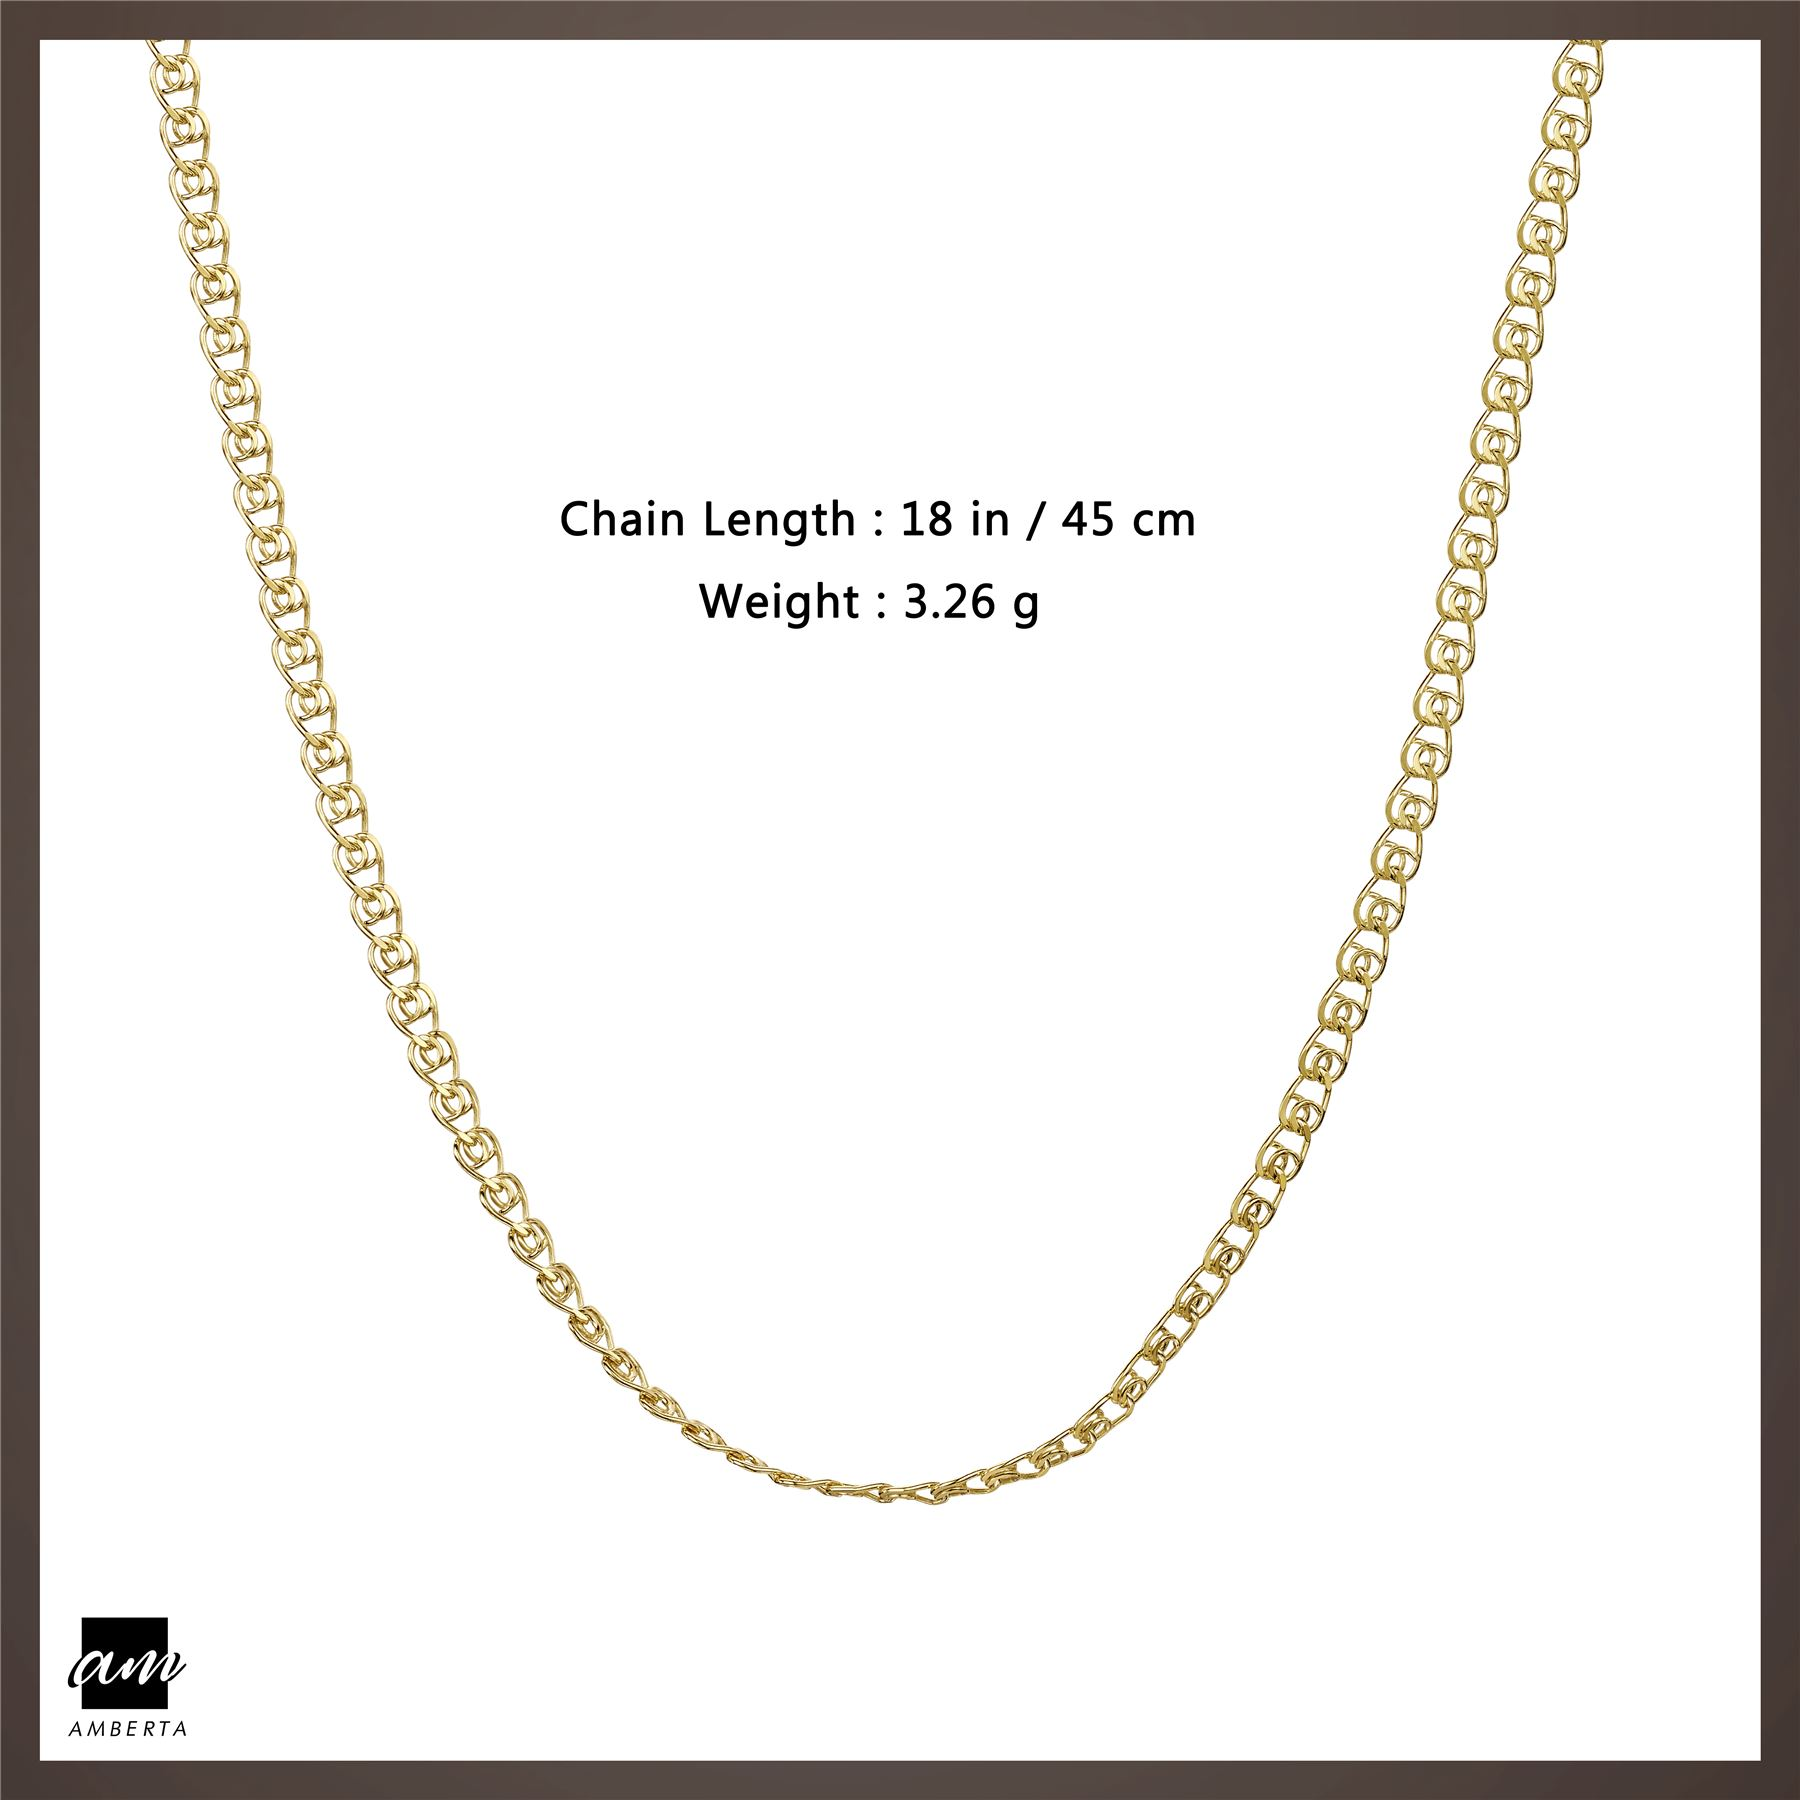 Amberta-Genuine-Gold-Plated-on-Real-925-Sterling-Silver-Necklace-Chain-Italy 縮圖 58